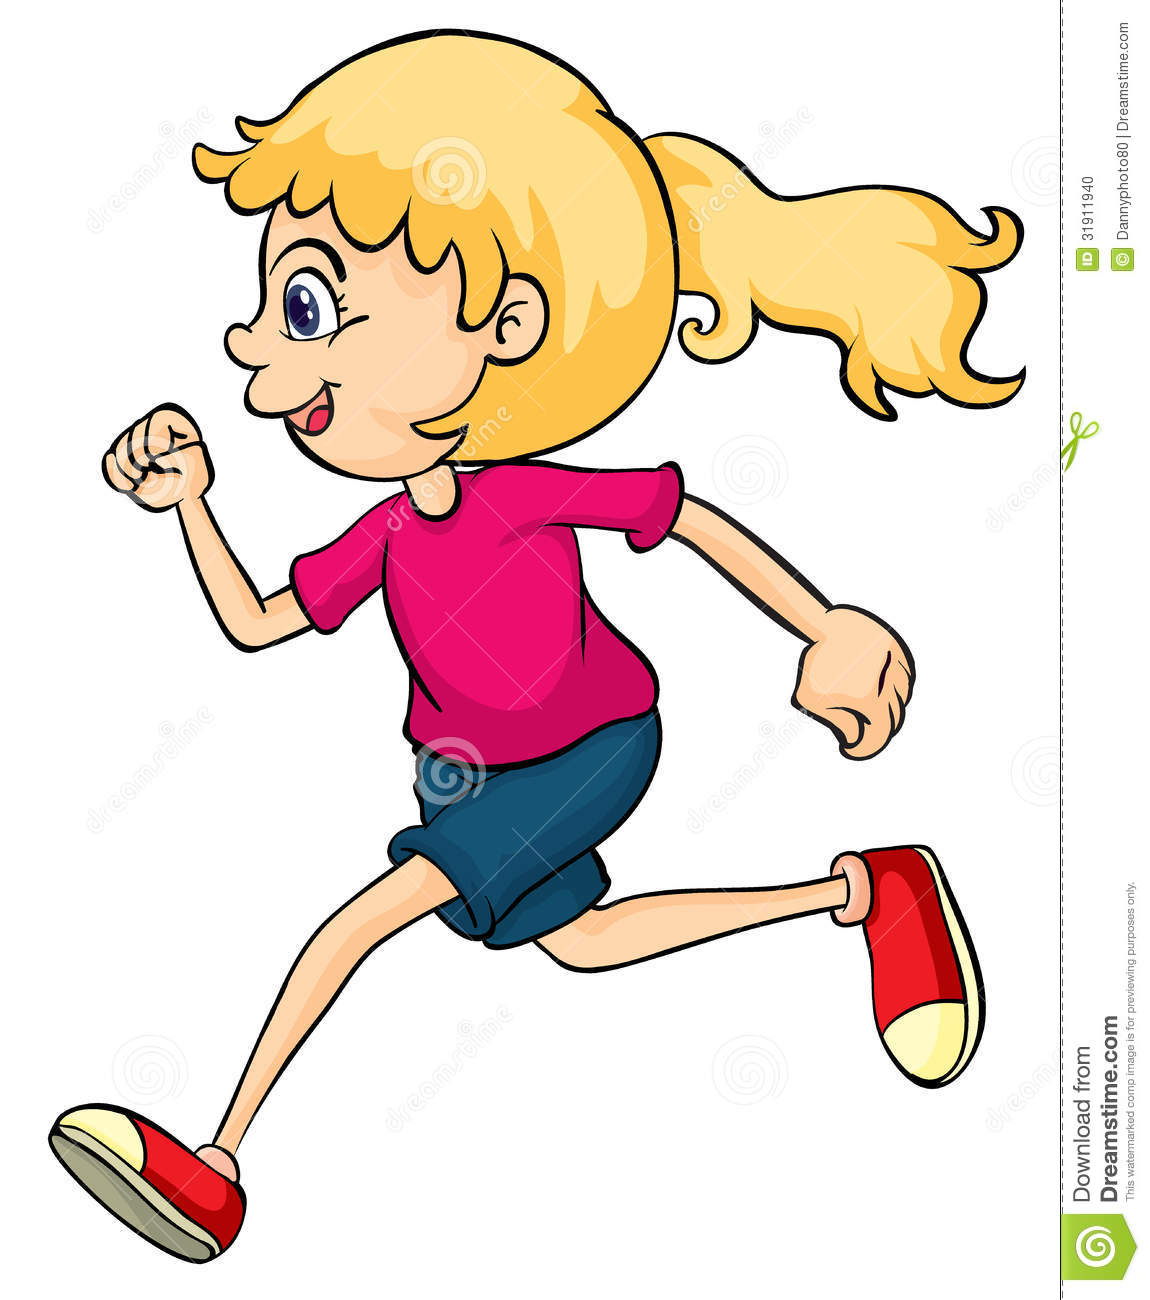 Run clipart #18